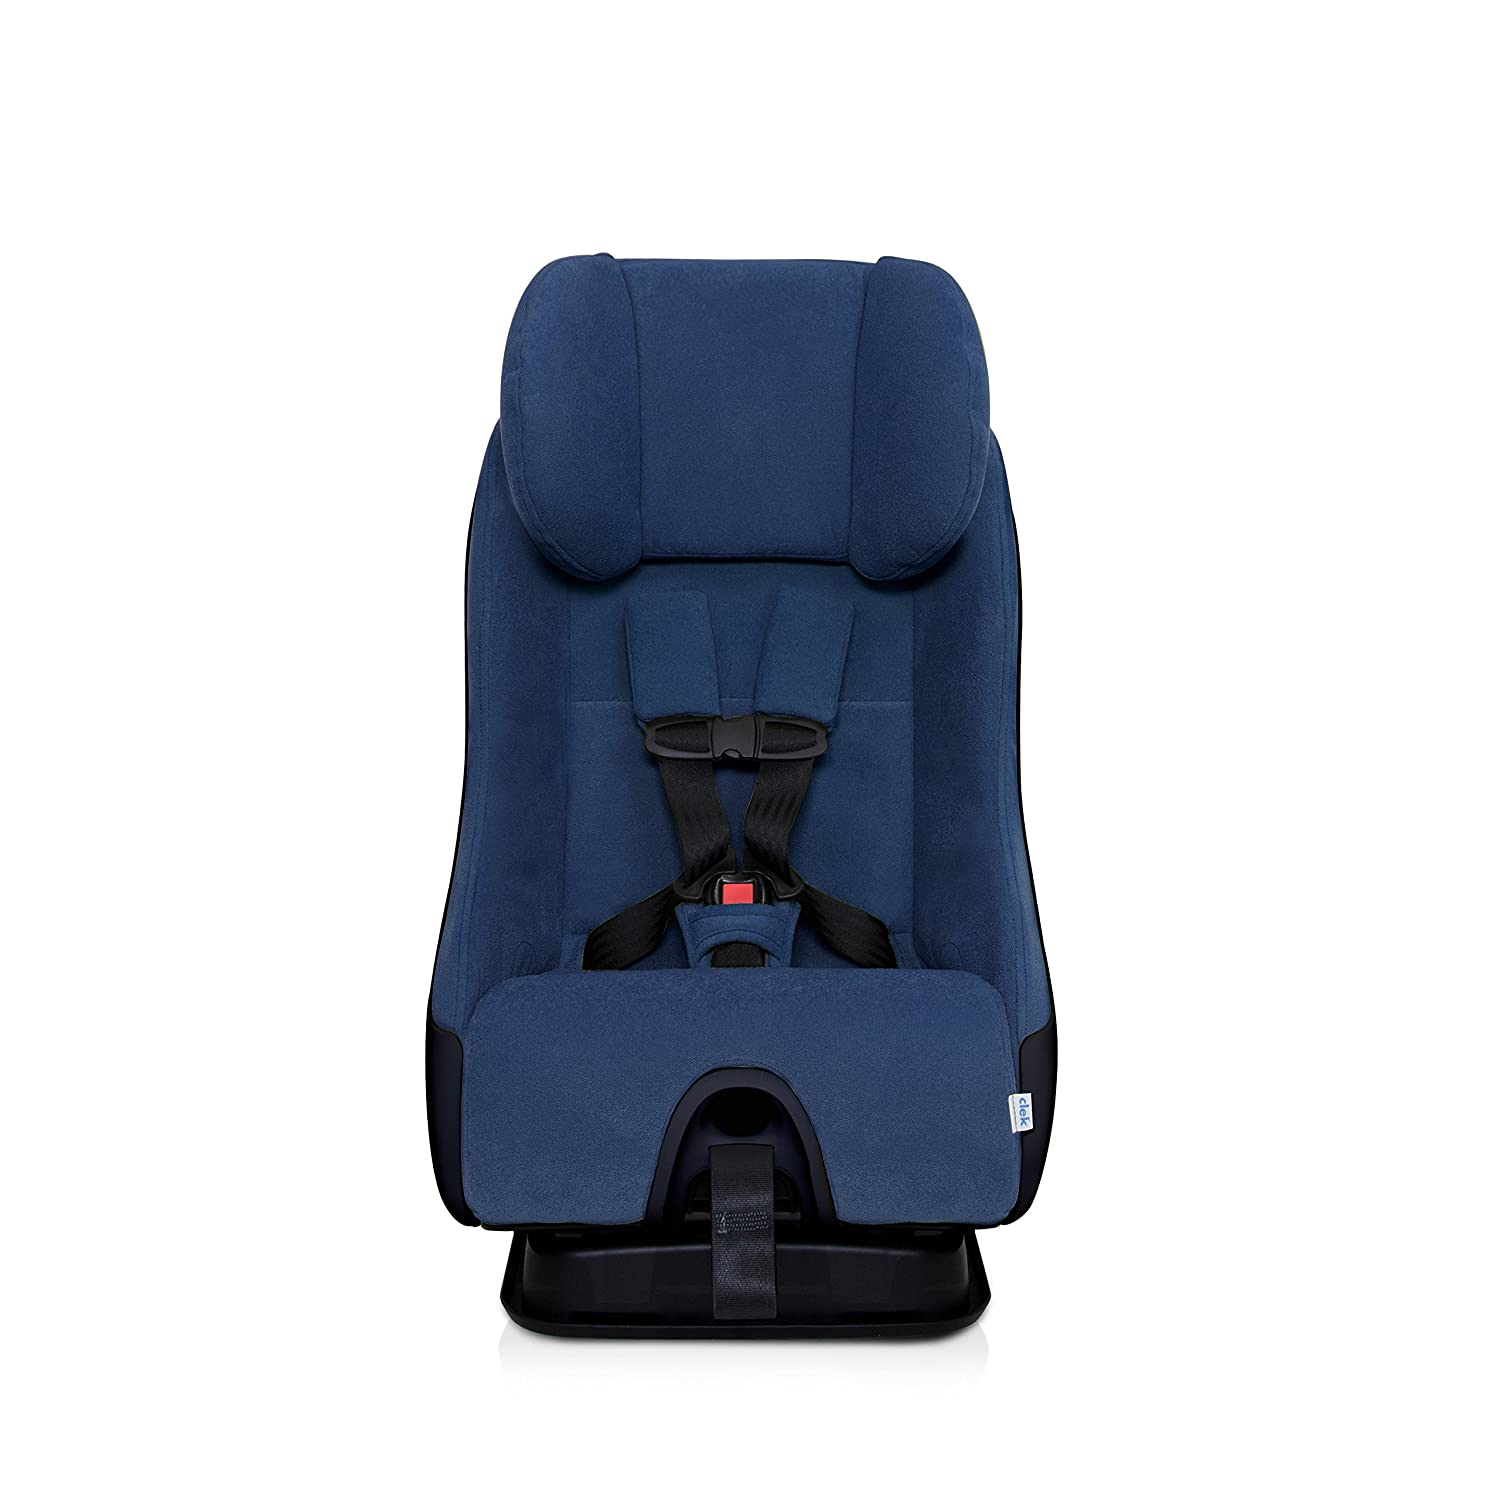 Amazon.com : Clek Fllo Convertible Baby and Toddler Car Seat Rear ...